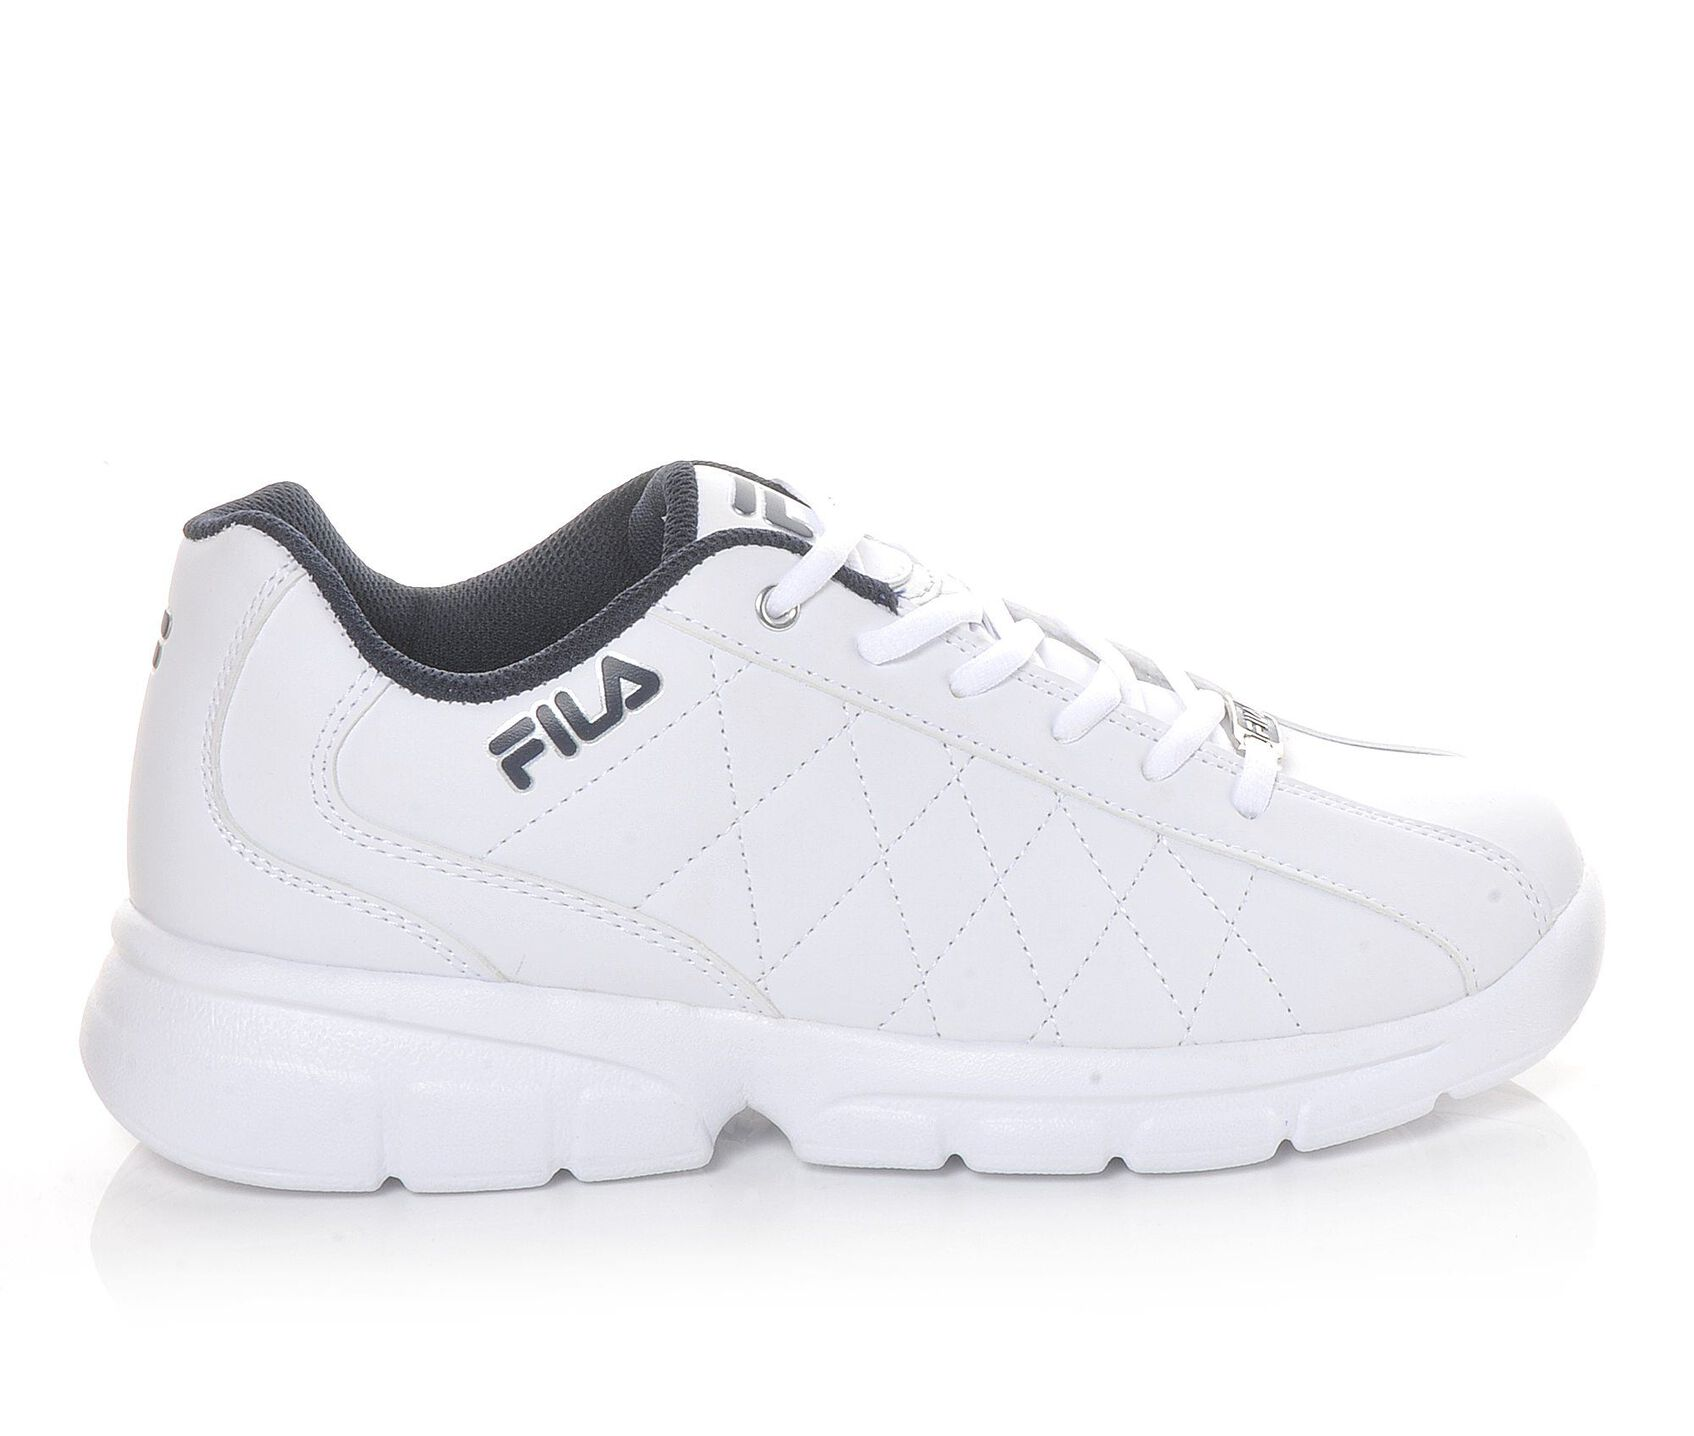 e2acbc80 Men's Fila Fulcrum 3 Training Shoes